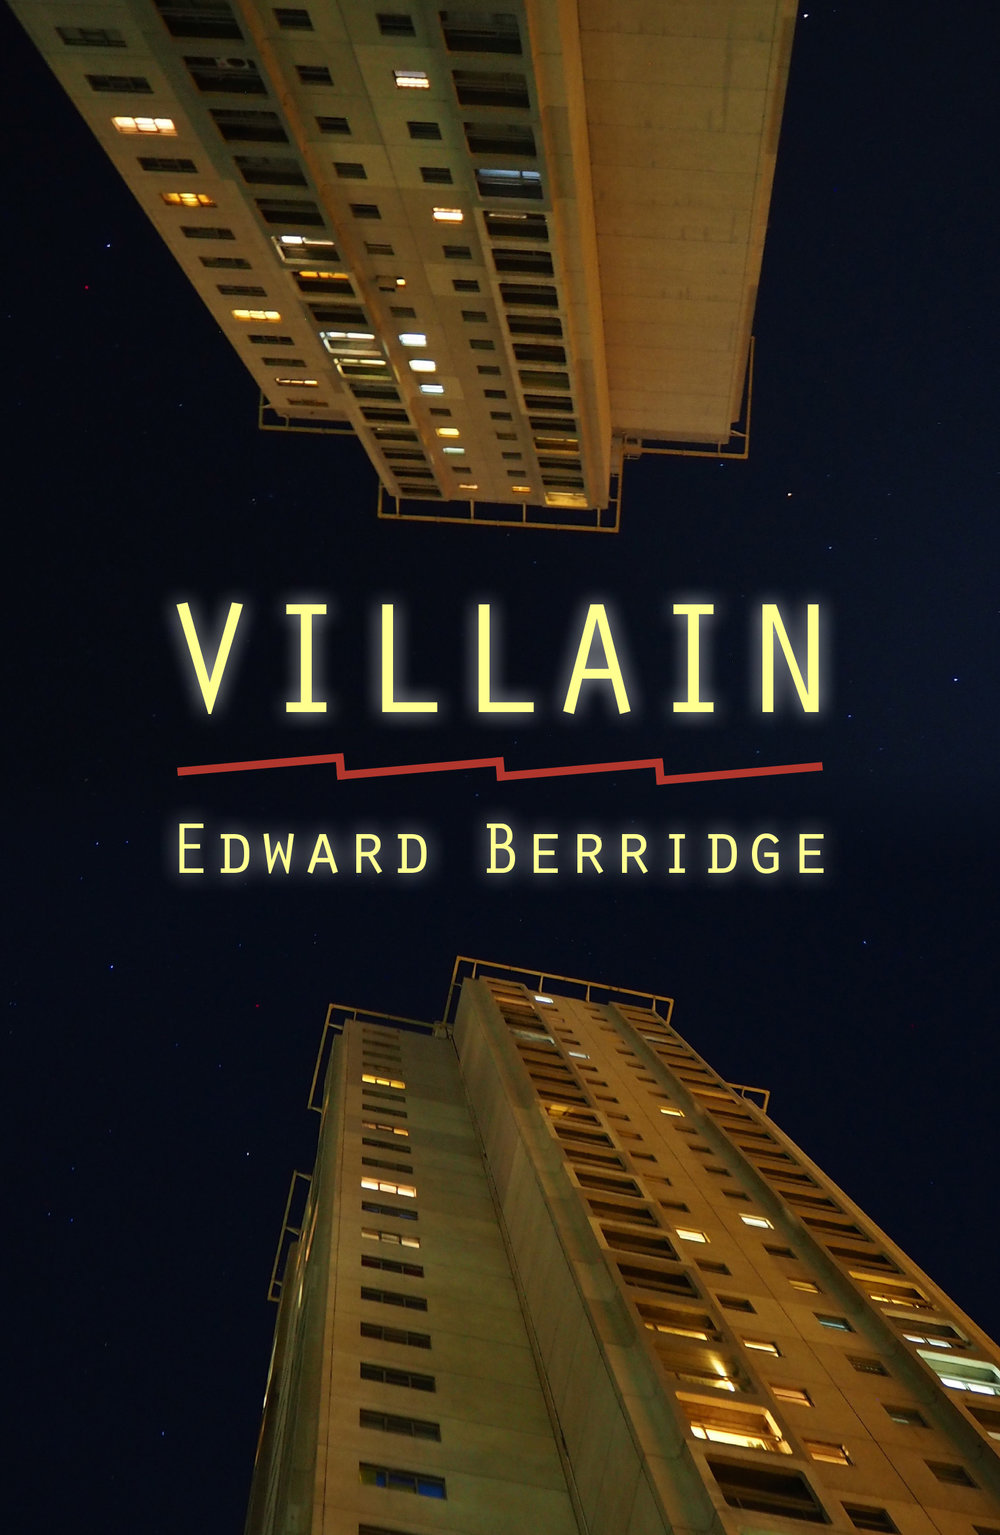 Villain by Edward Berridge Front cover.jpg